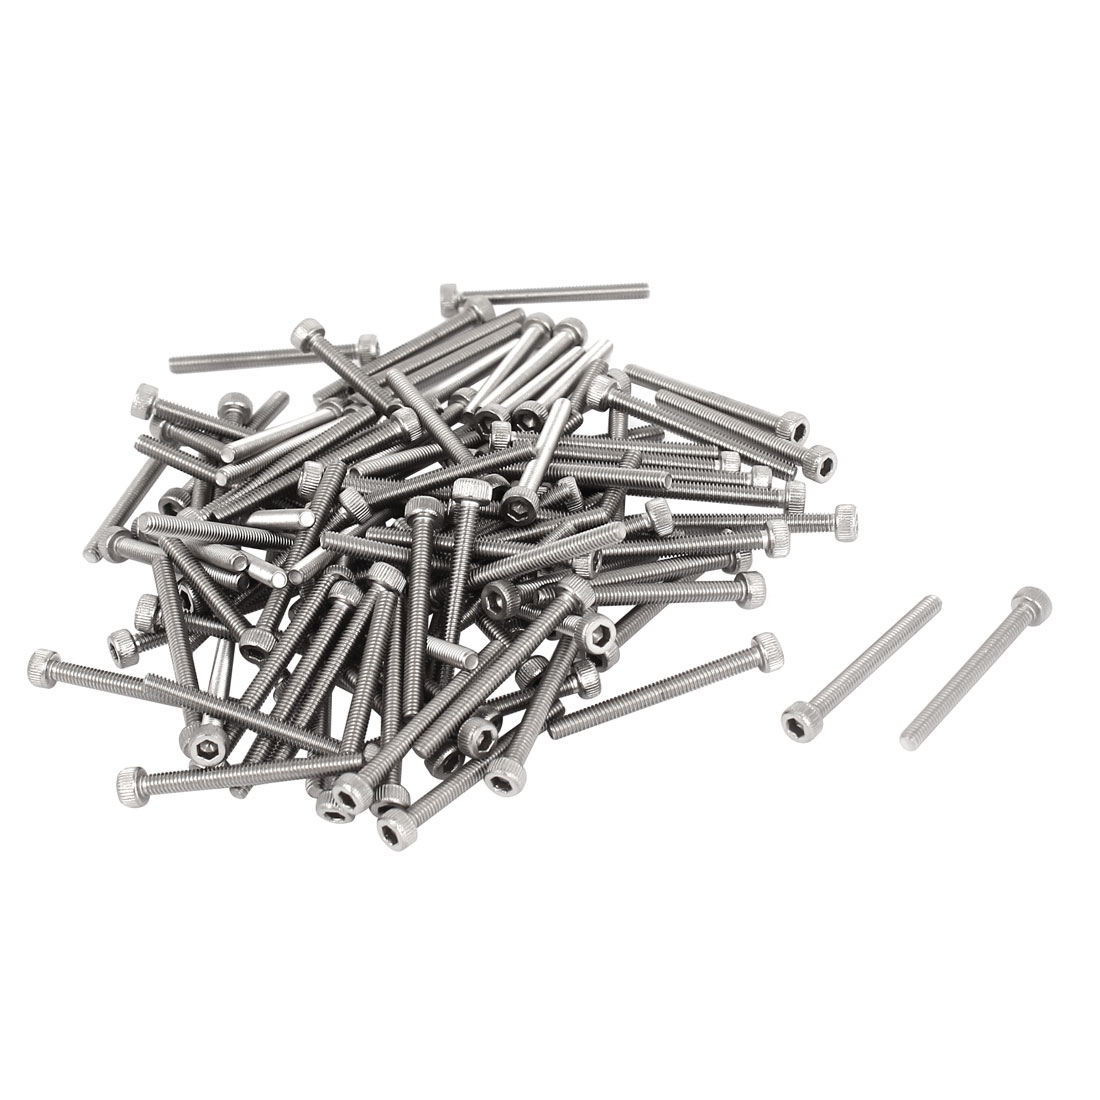 M2.5x25mm 0.45mm Pitch Stainless Steel Bolts Hex Socket Cap Head Screws 100pcs